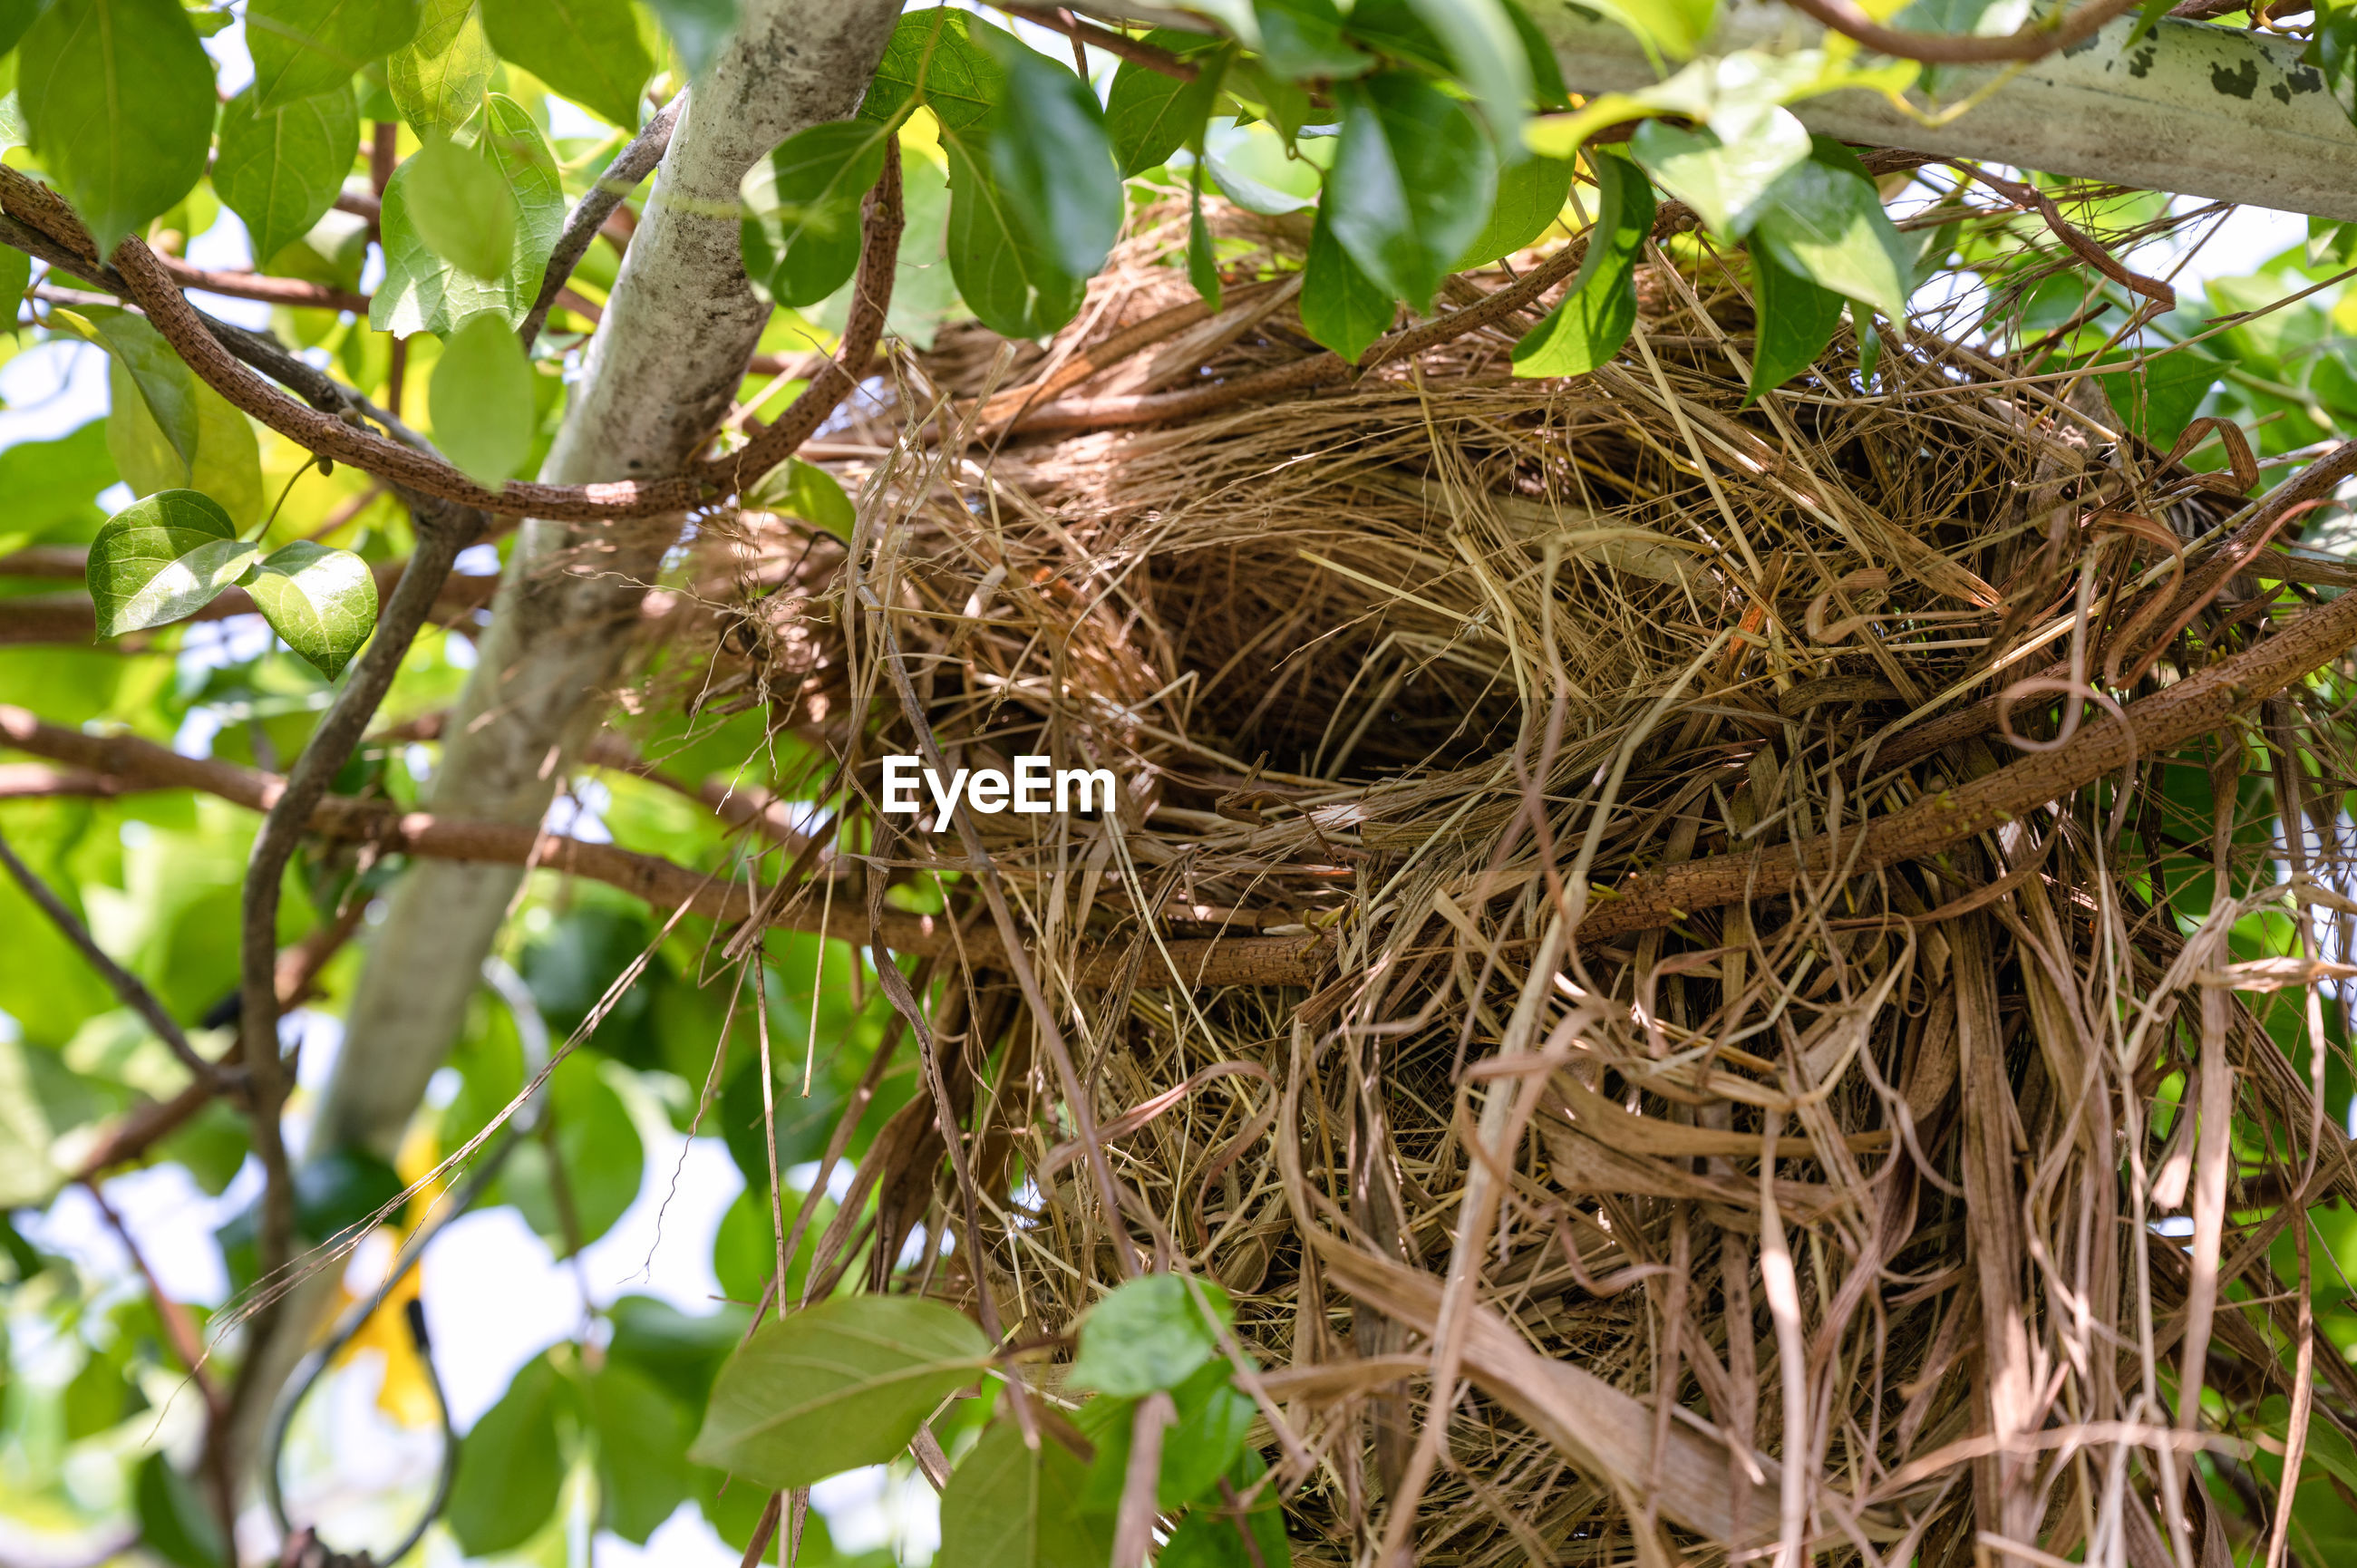 LOW ANGLE VIEW OF BIRD IN NEST